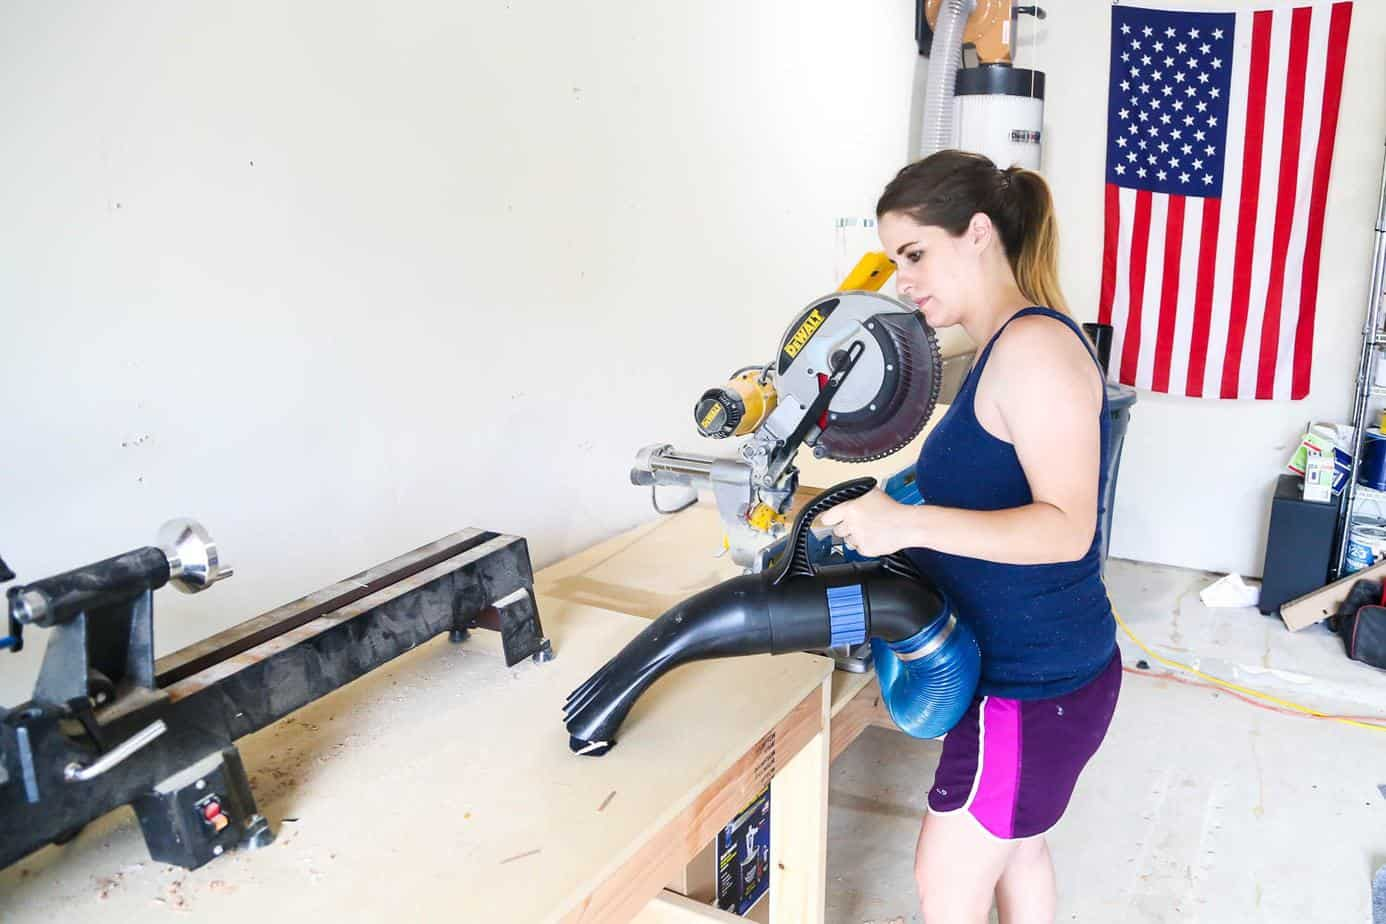 Clean workbench with Rockler dust collection system